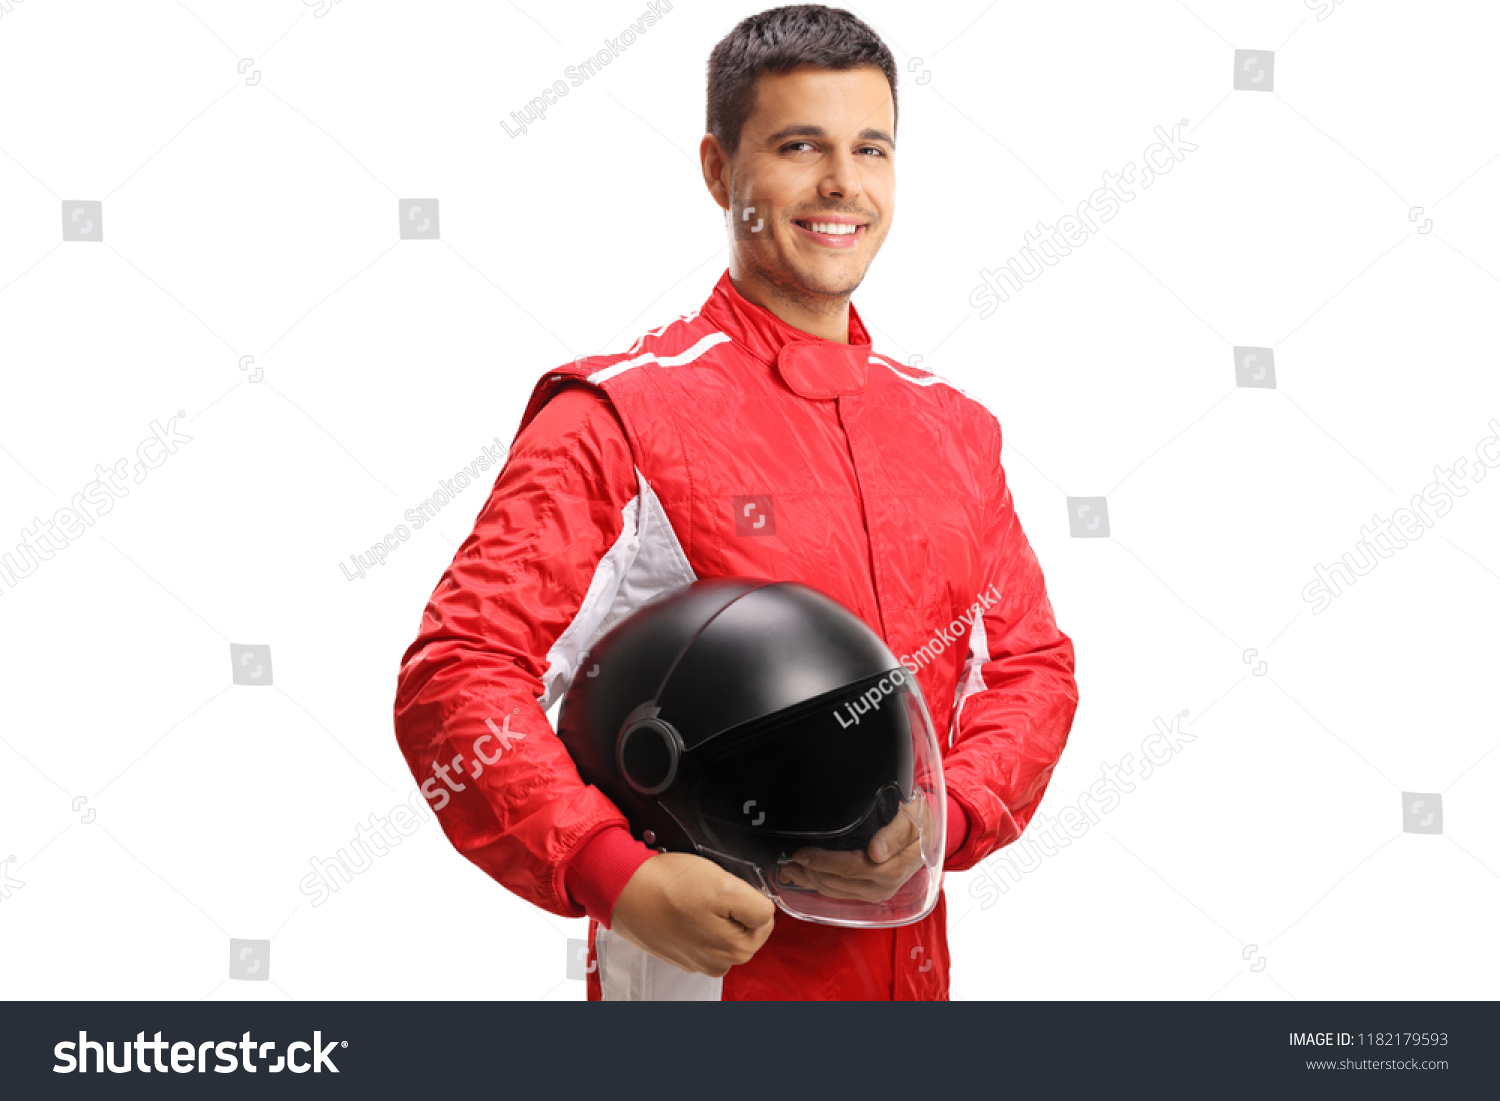 Racer with a helmet looking at the camera and smiling isolated on white background #1182179593